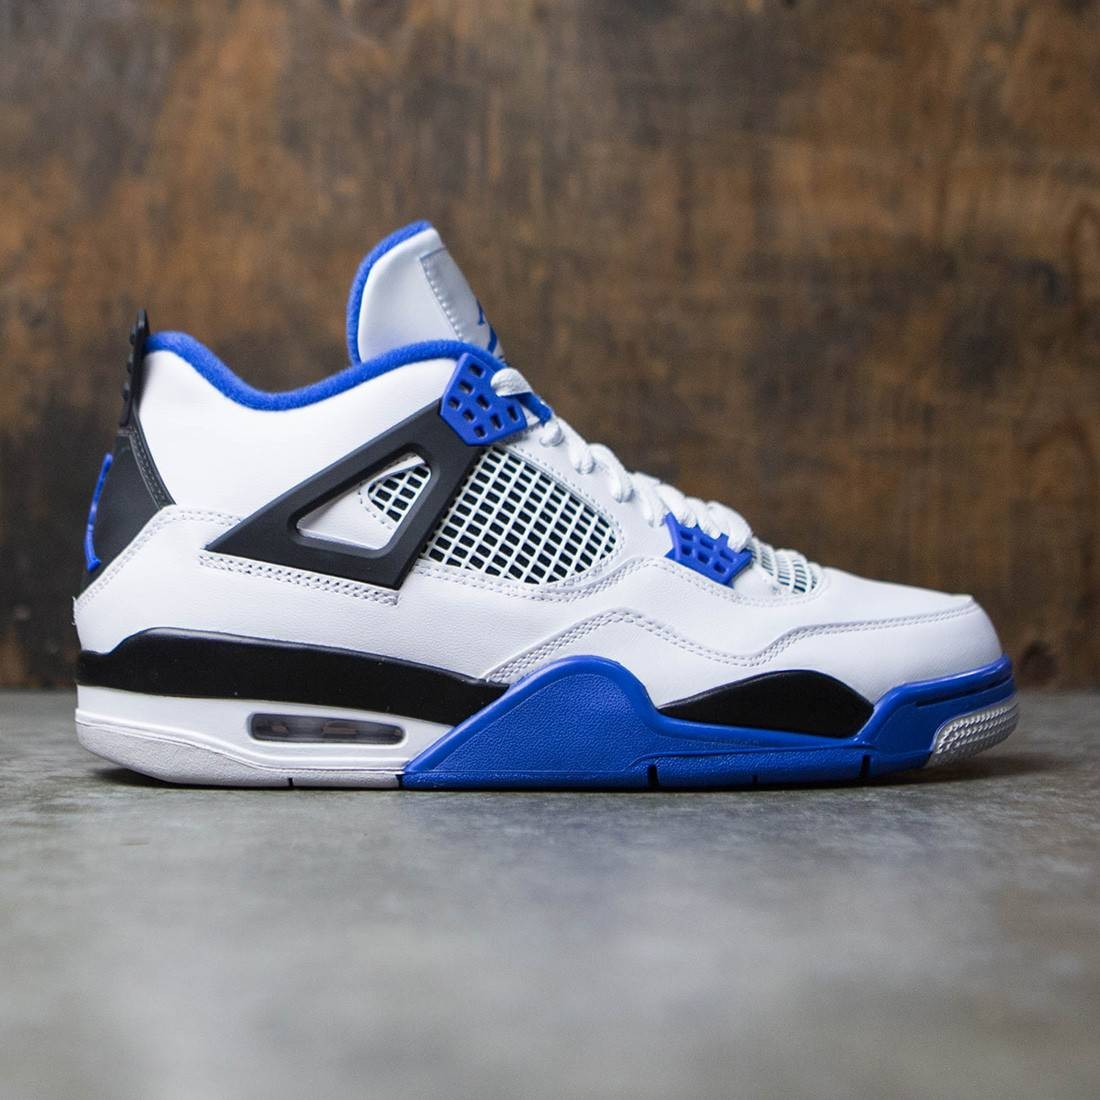 2b302348 Jordan Men Air Jordan 4 Retro Motorsports (white / game royal-black)